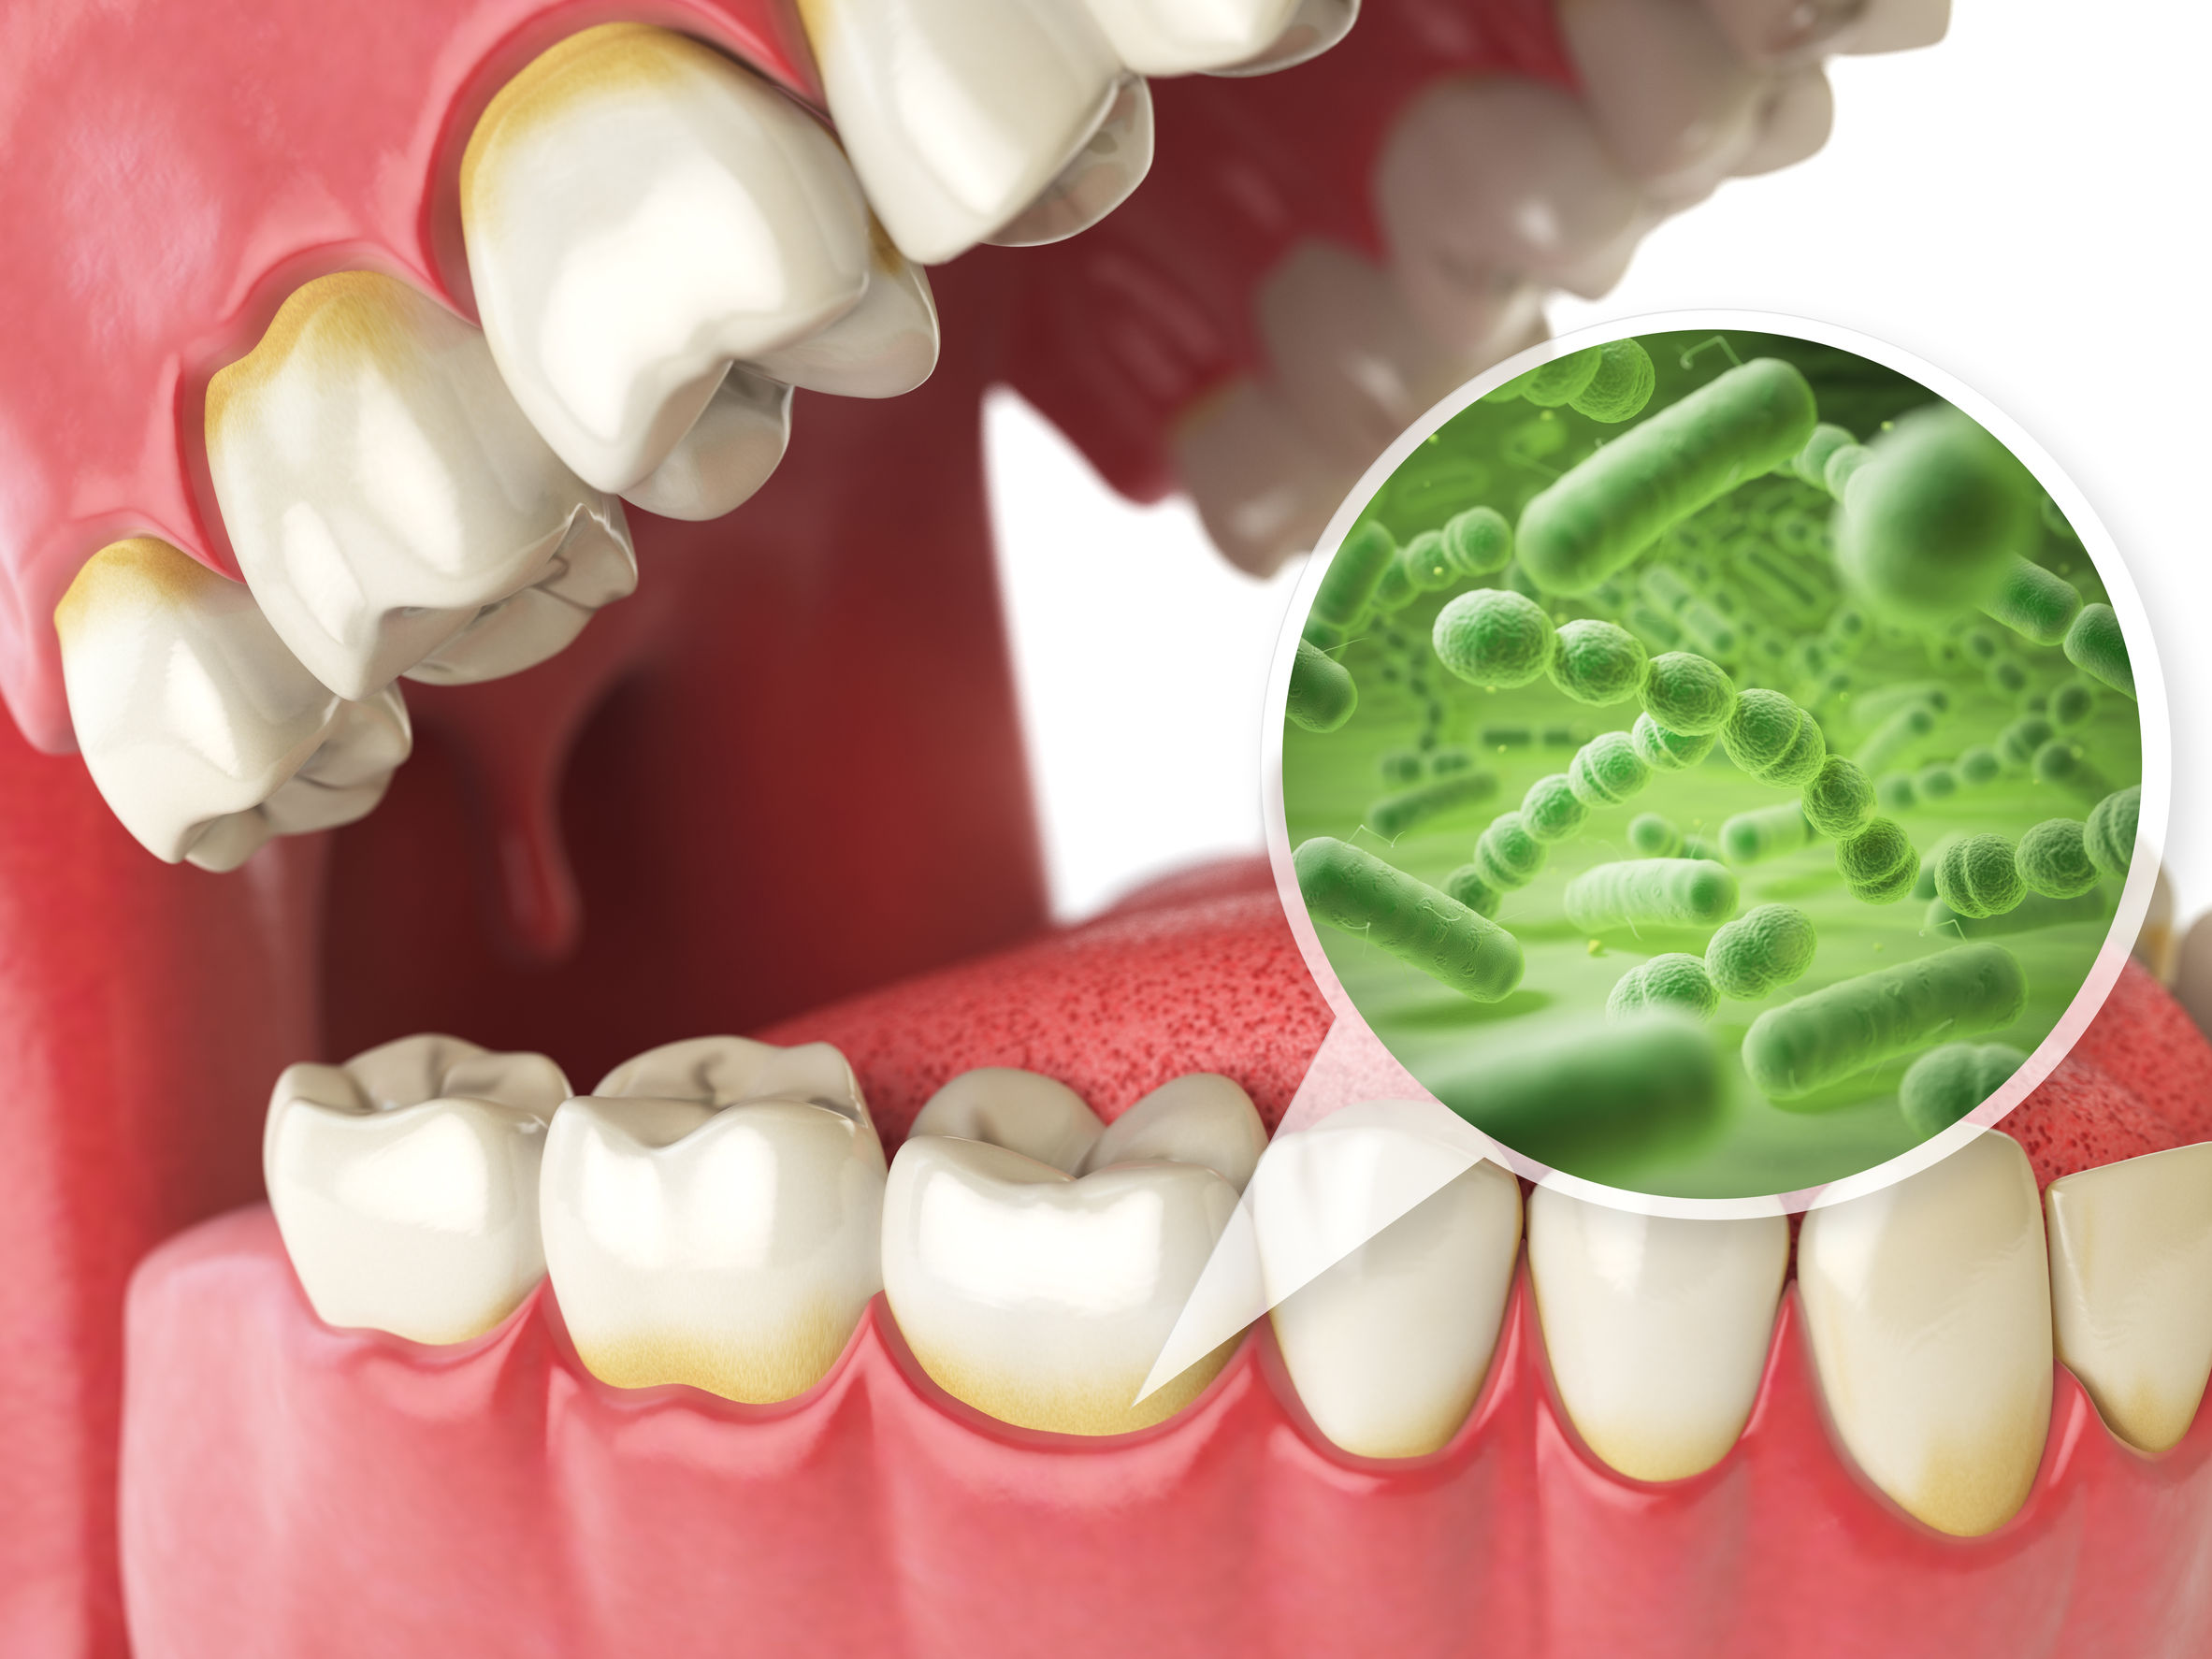 71865960 - bacterias and viruses around tooth. dental hygiene medical concept. 3d illustration